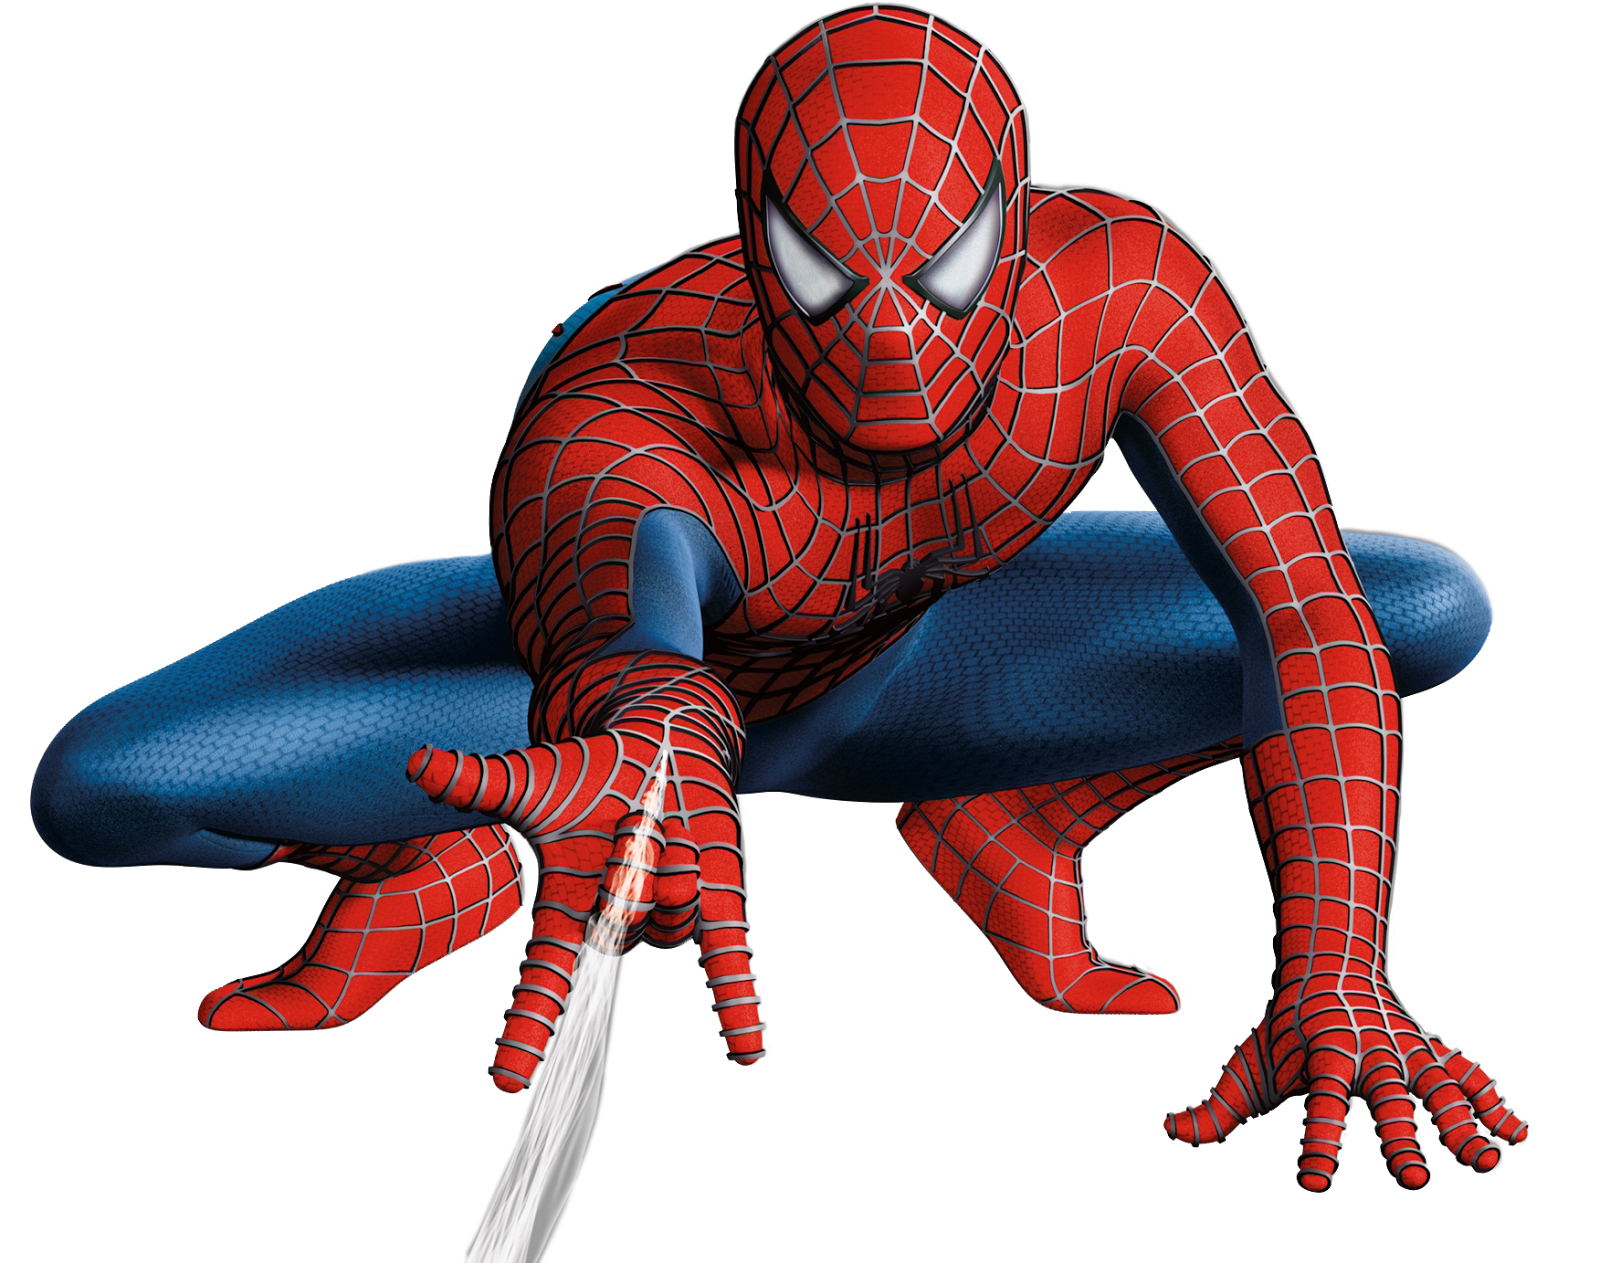 Spider-Man Download Png PNG Image - Spiderman HD PNG